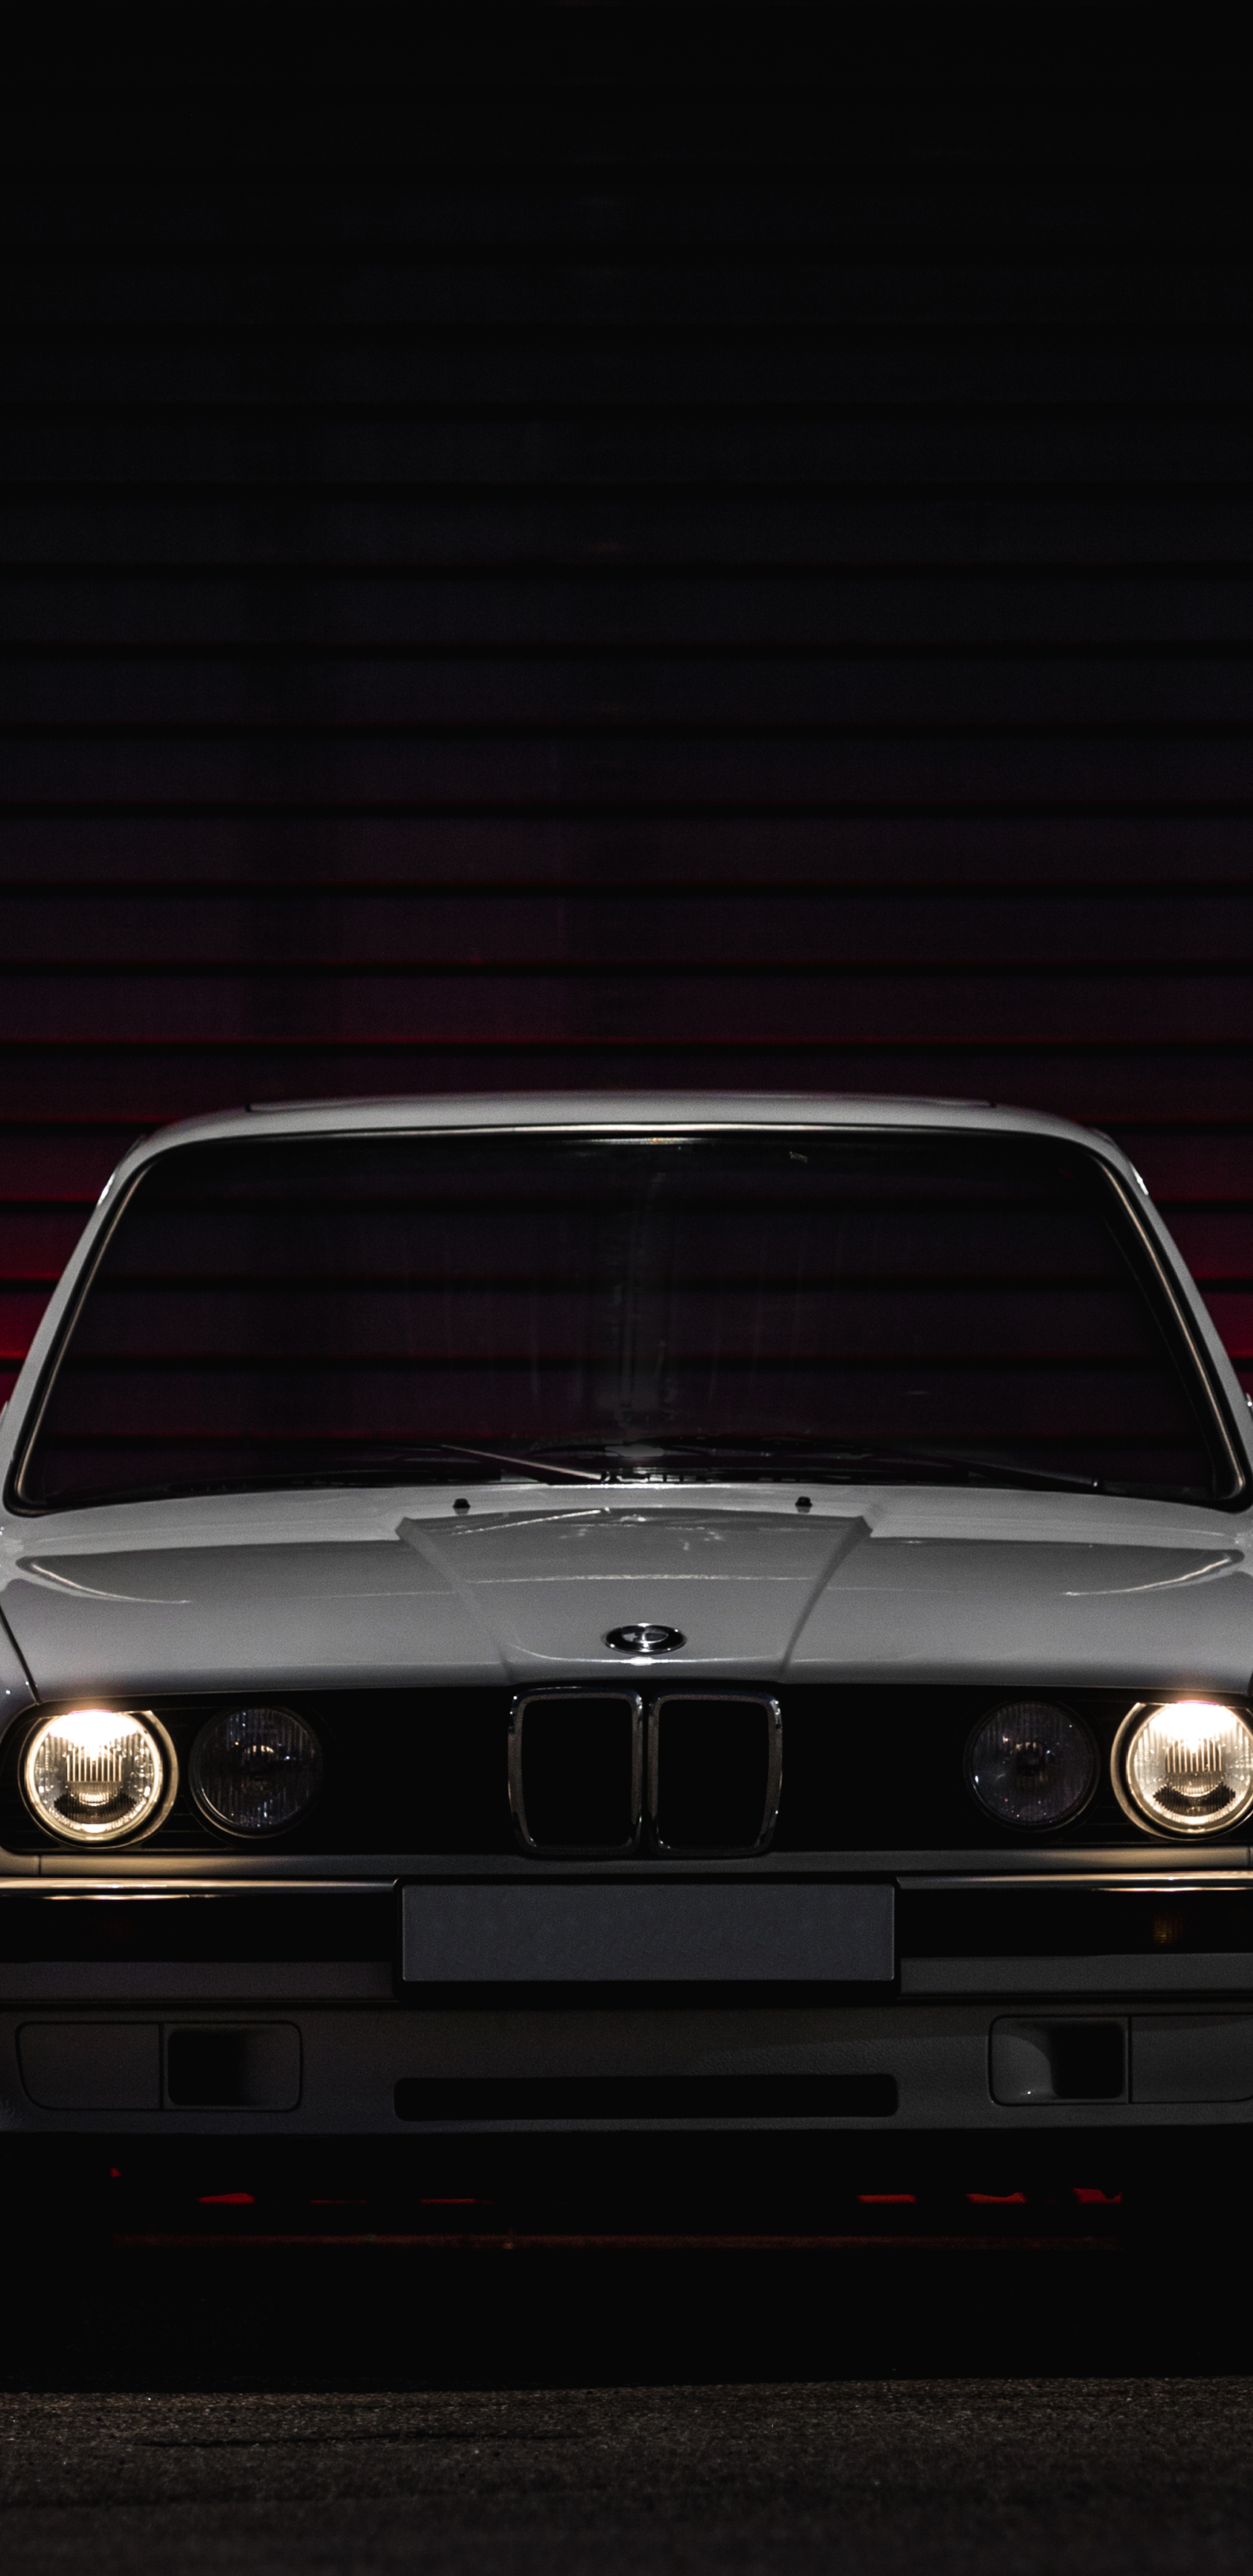 1440x2960 Bmw E30 Car Samsung Galaxy Note 9 8 S9 S8 S8 Qhd Wallpaper Hd Cars 4k Wallpapers Images Photos And Background